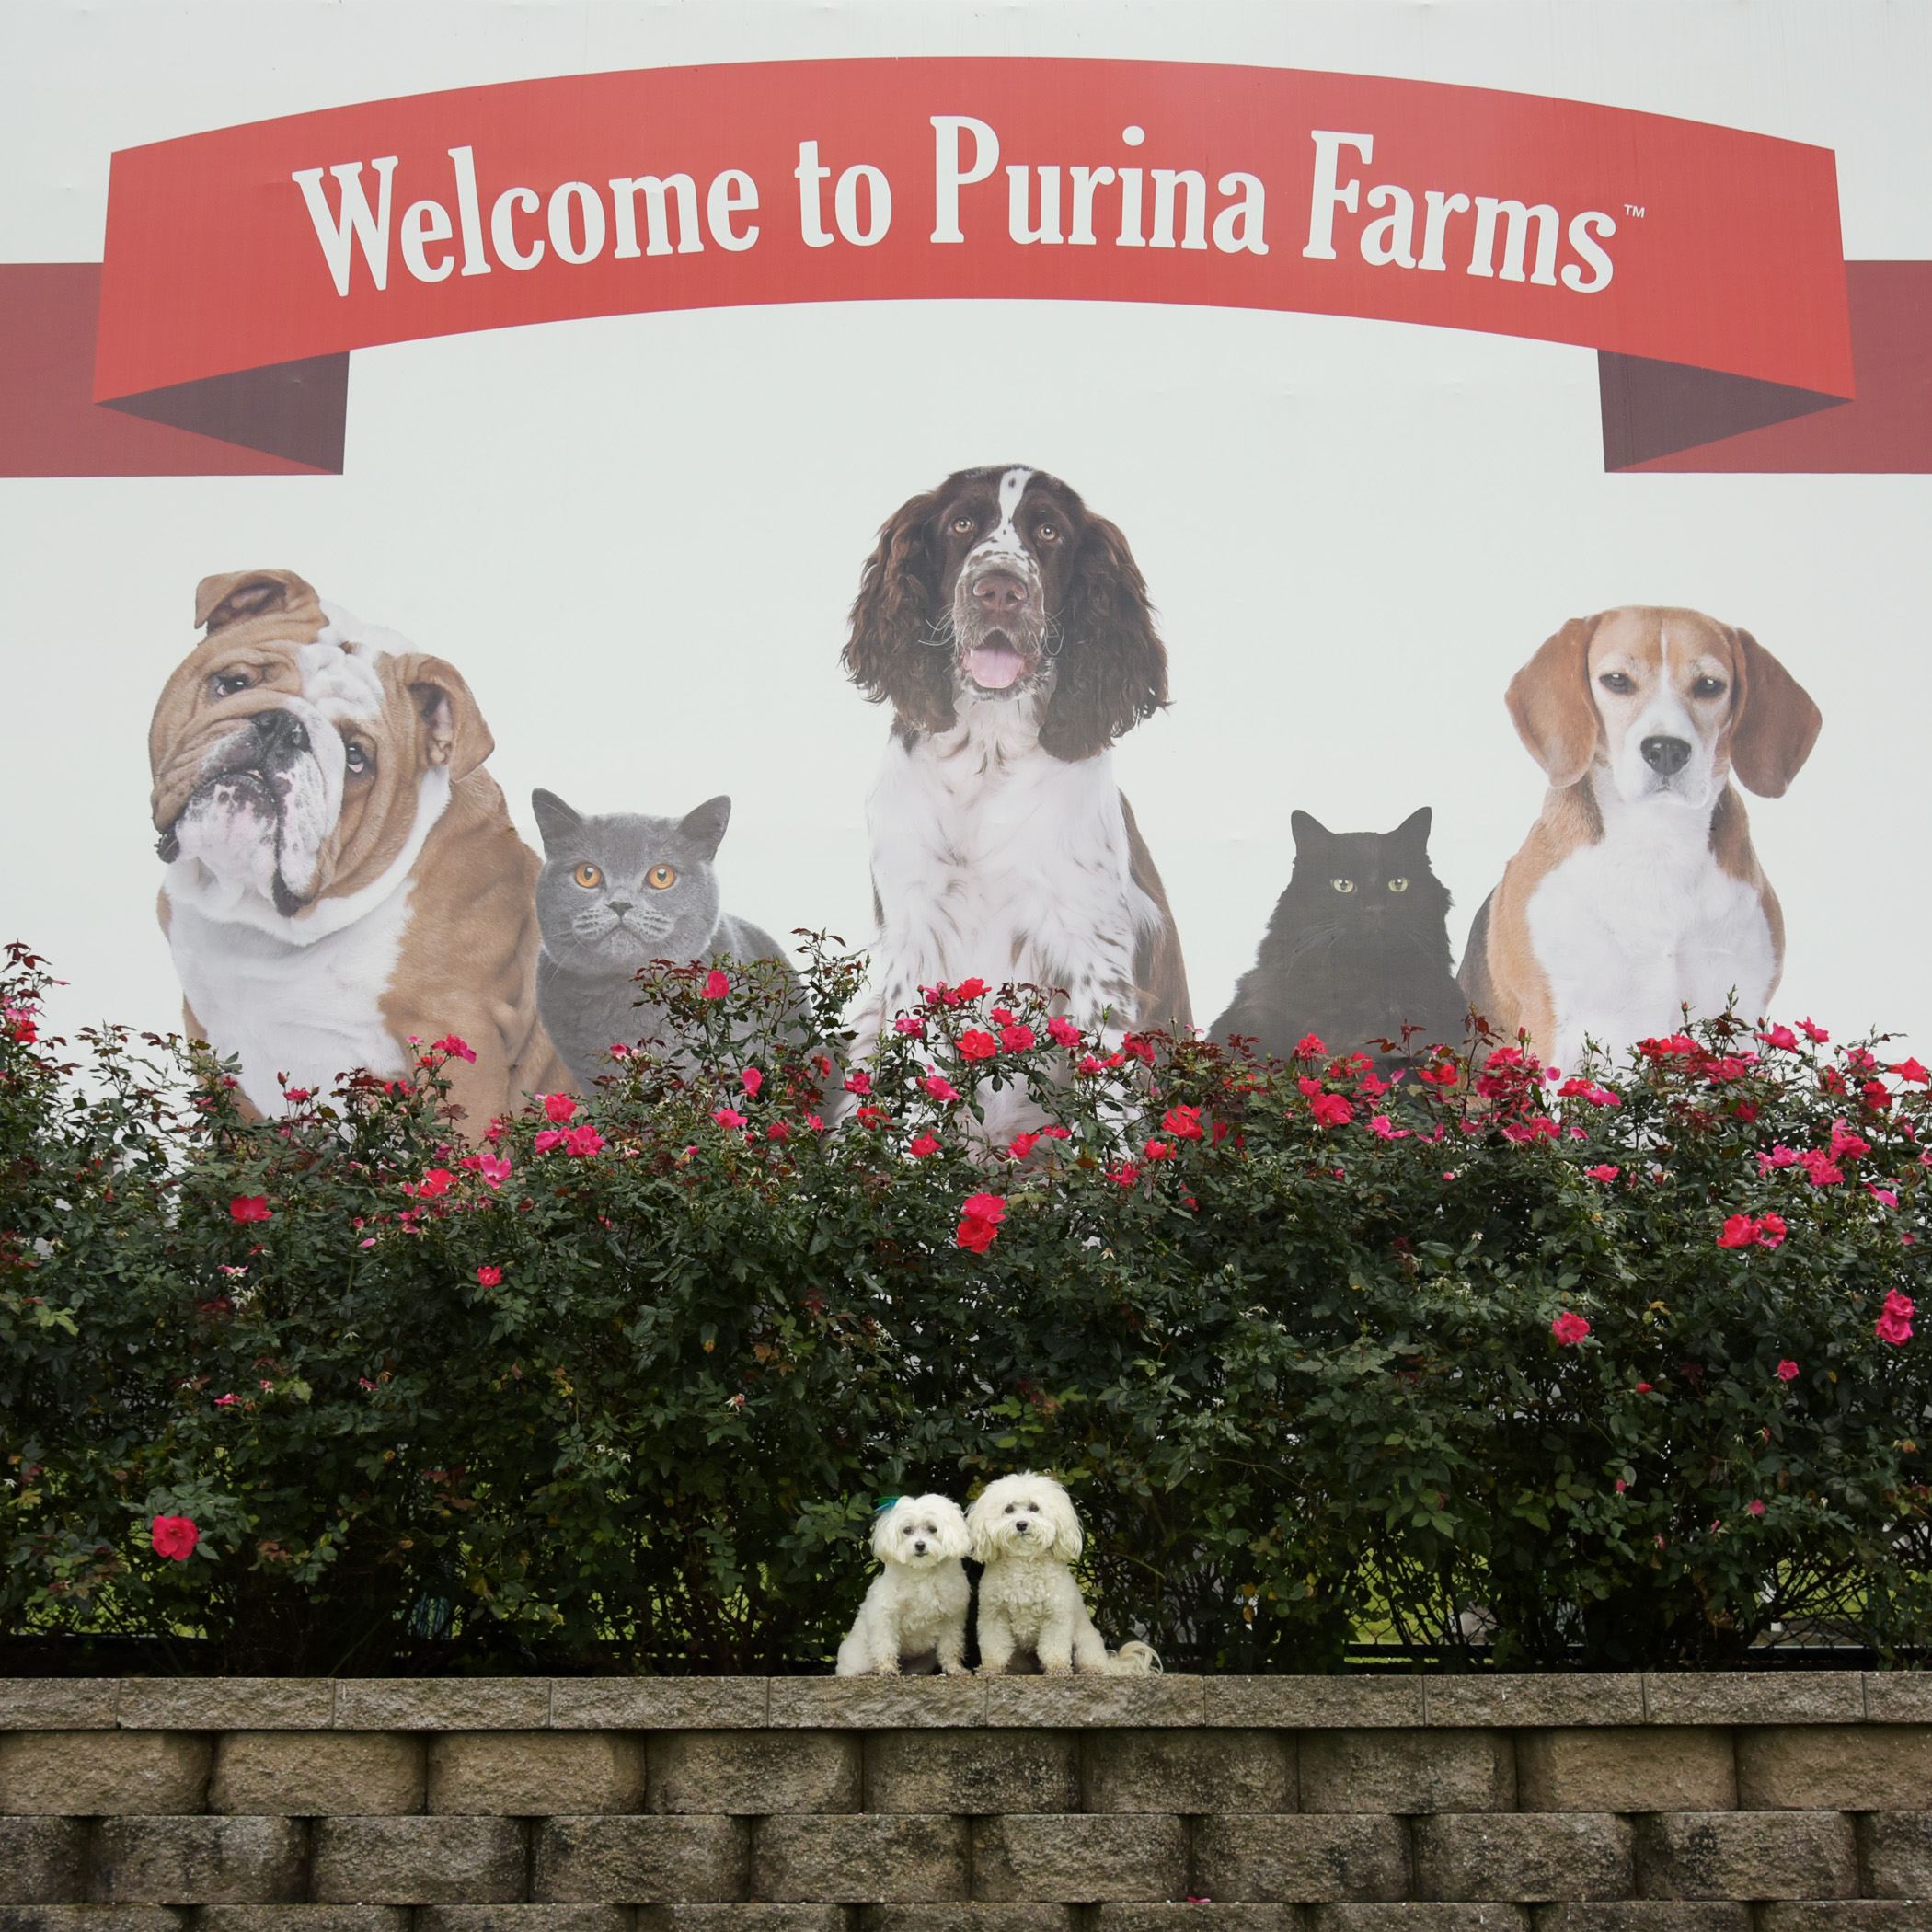 Ah yeah, we're just two little munchkins hanging out at the big Purina Farms in Gray Summit, Missouri!